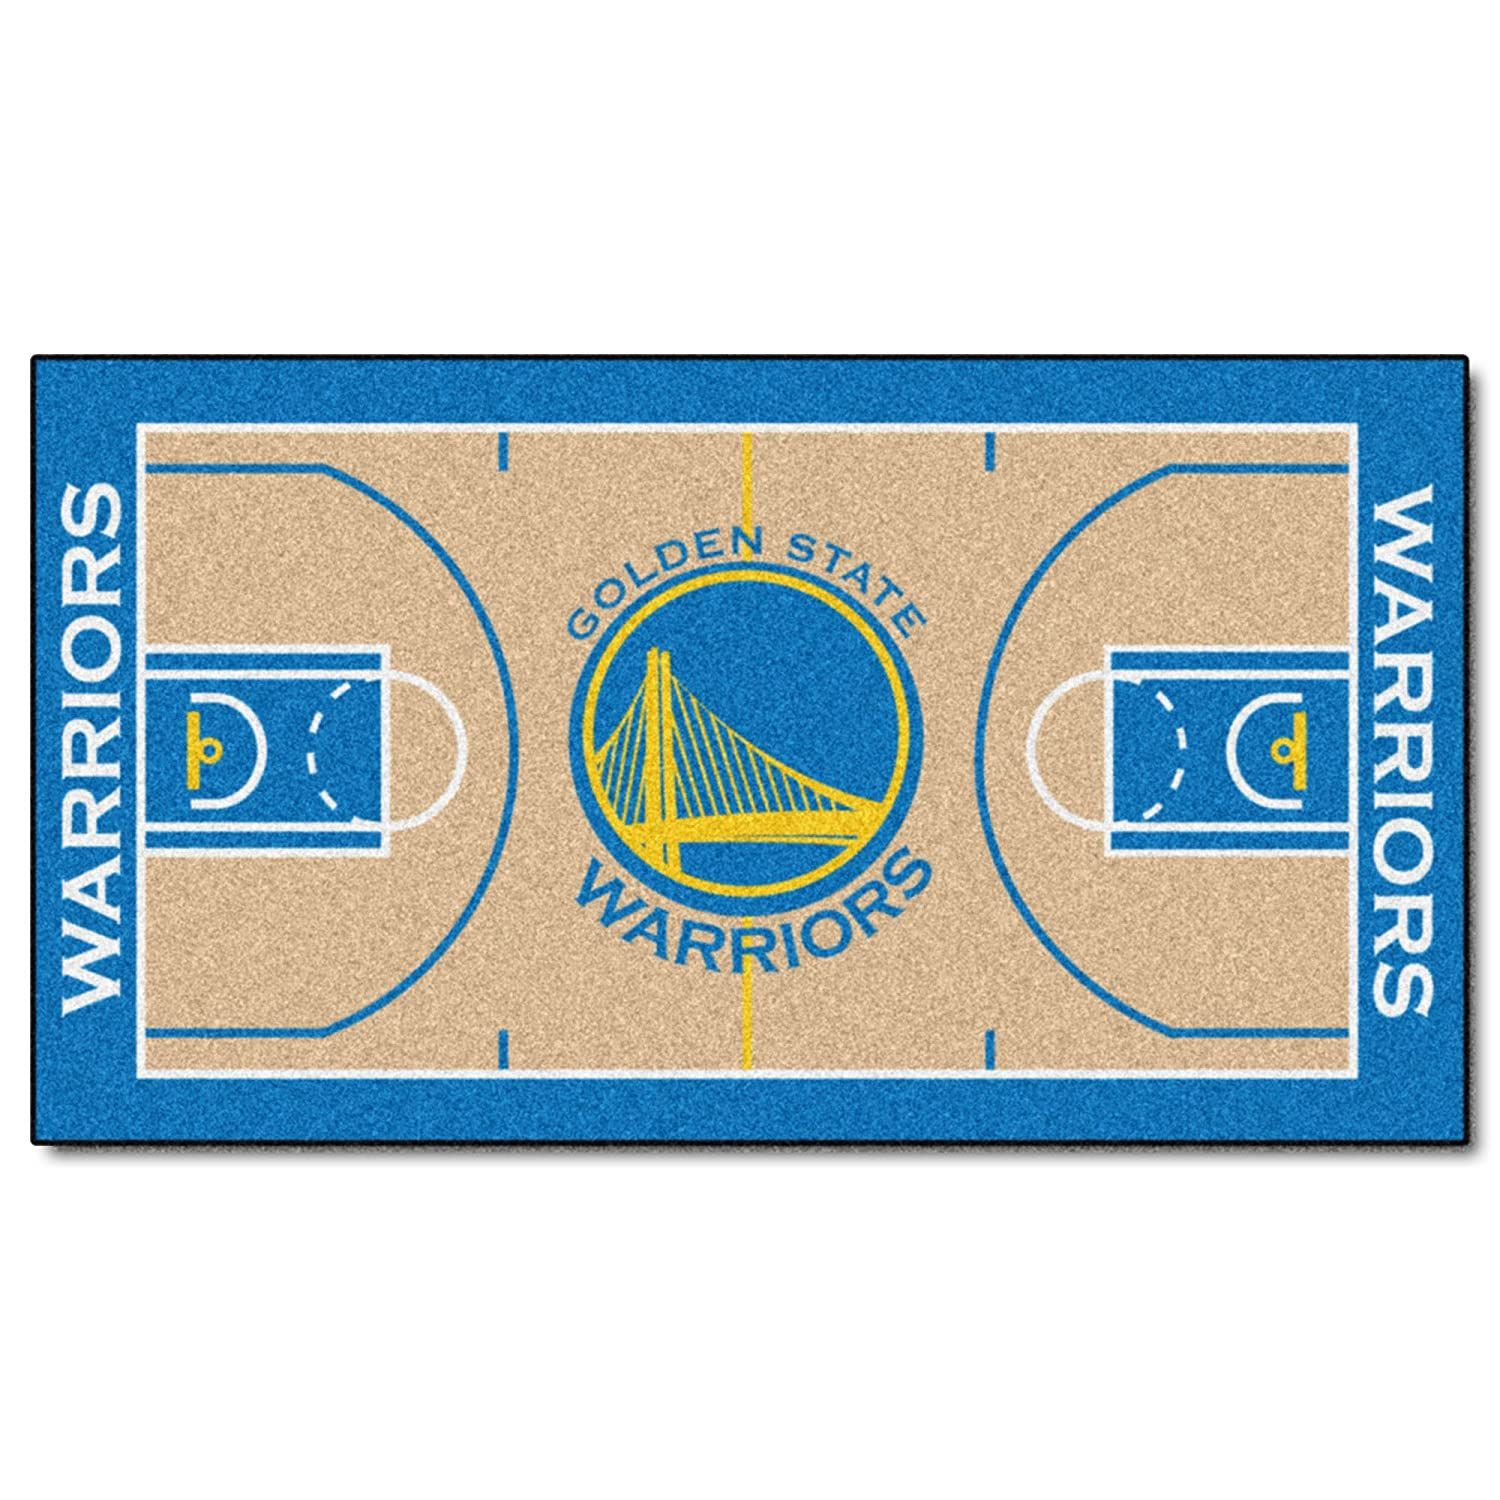 Amazon FANMATS 9264 NBA Golden State Warriors Nylon Face NBA